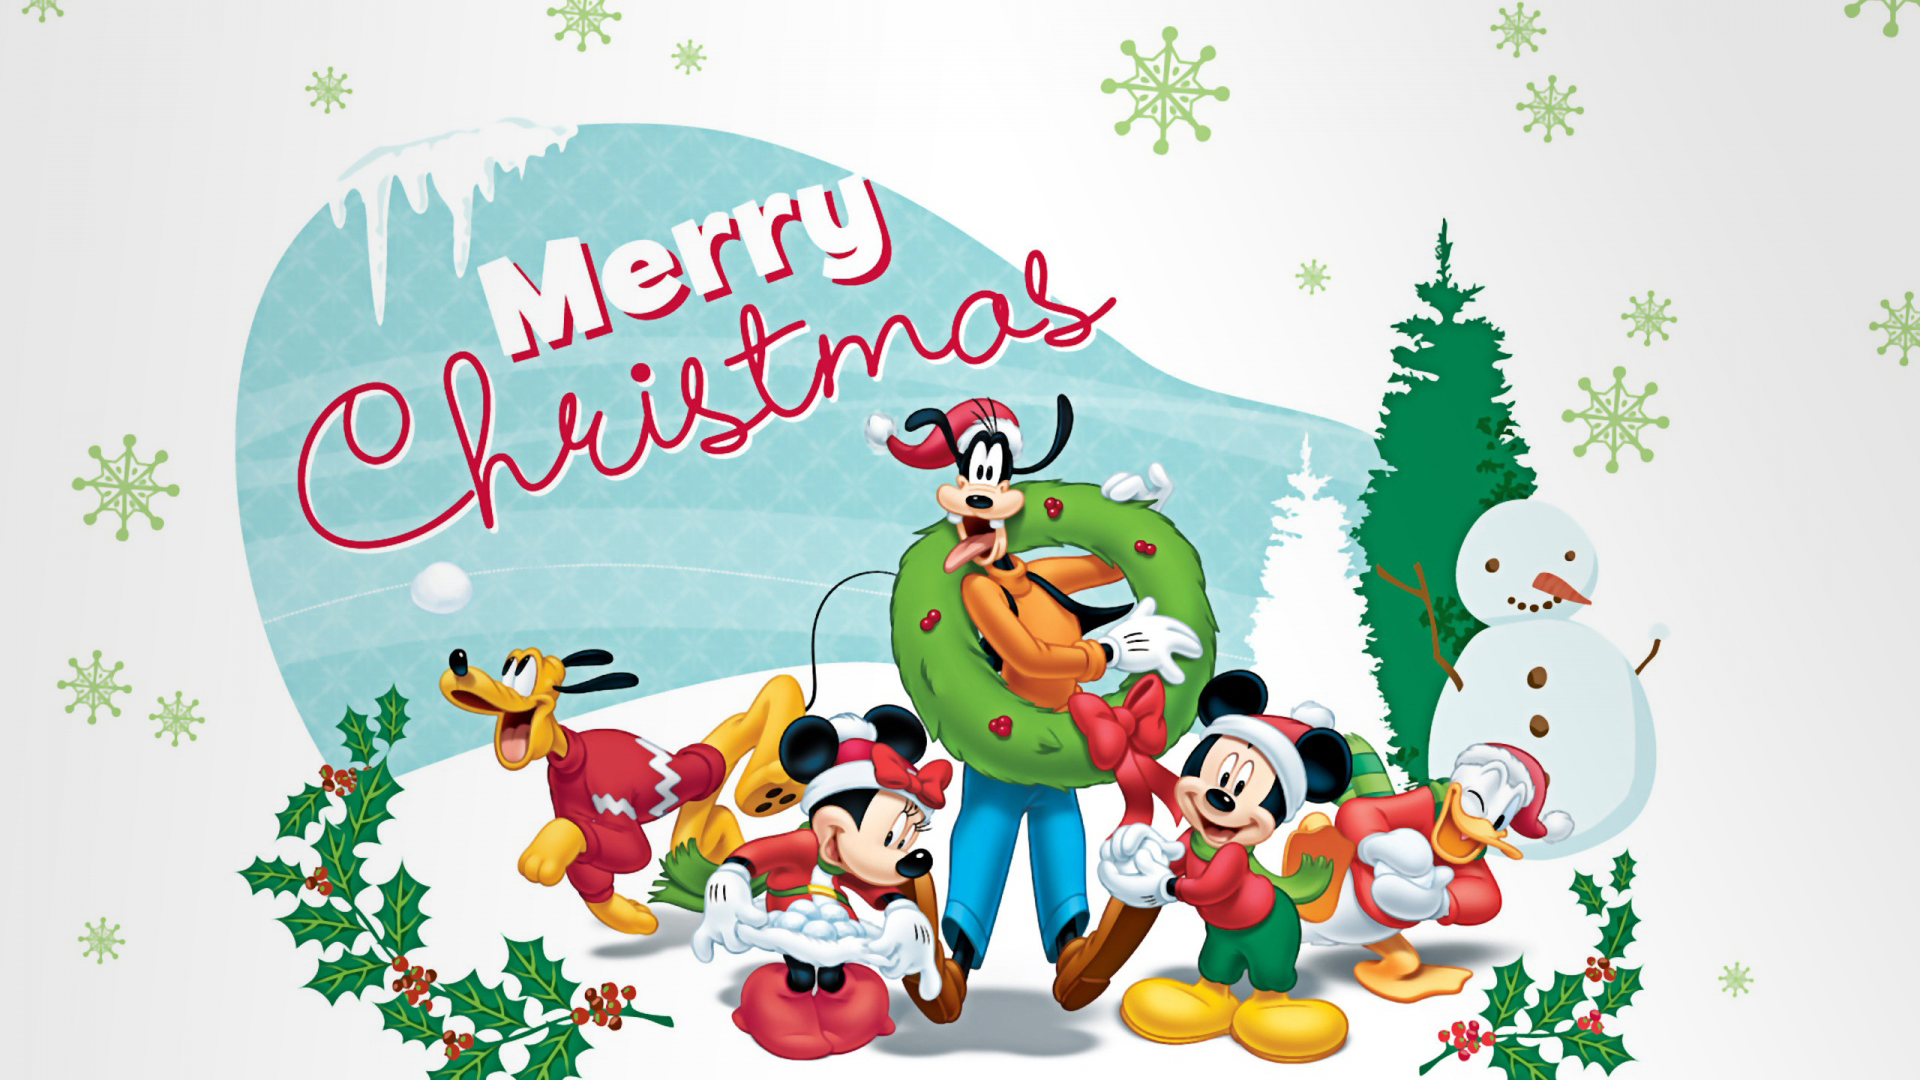 Free Download Mickey Mouse Christmas Wallpaper 1080p Full Hd Winter Disney 1920x1080 For Your Desktop Mobile Tablet Explore 75 Mickey Mouse Christmas Backgrounds Mickey Mouse Christmas Backgrounds Mickey Mouse